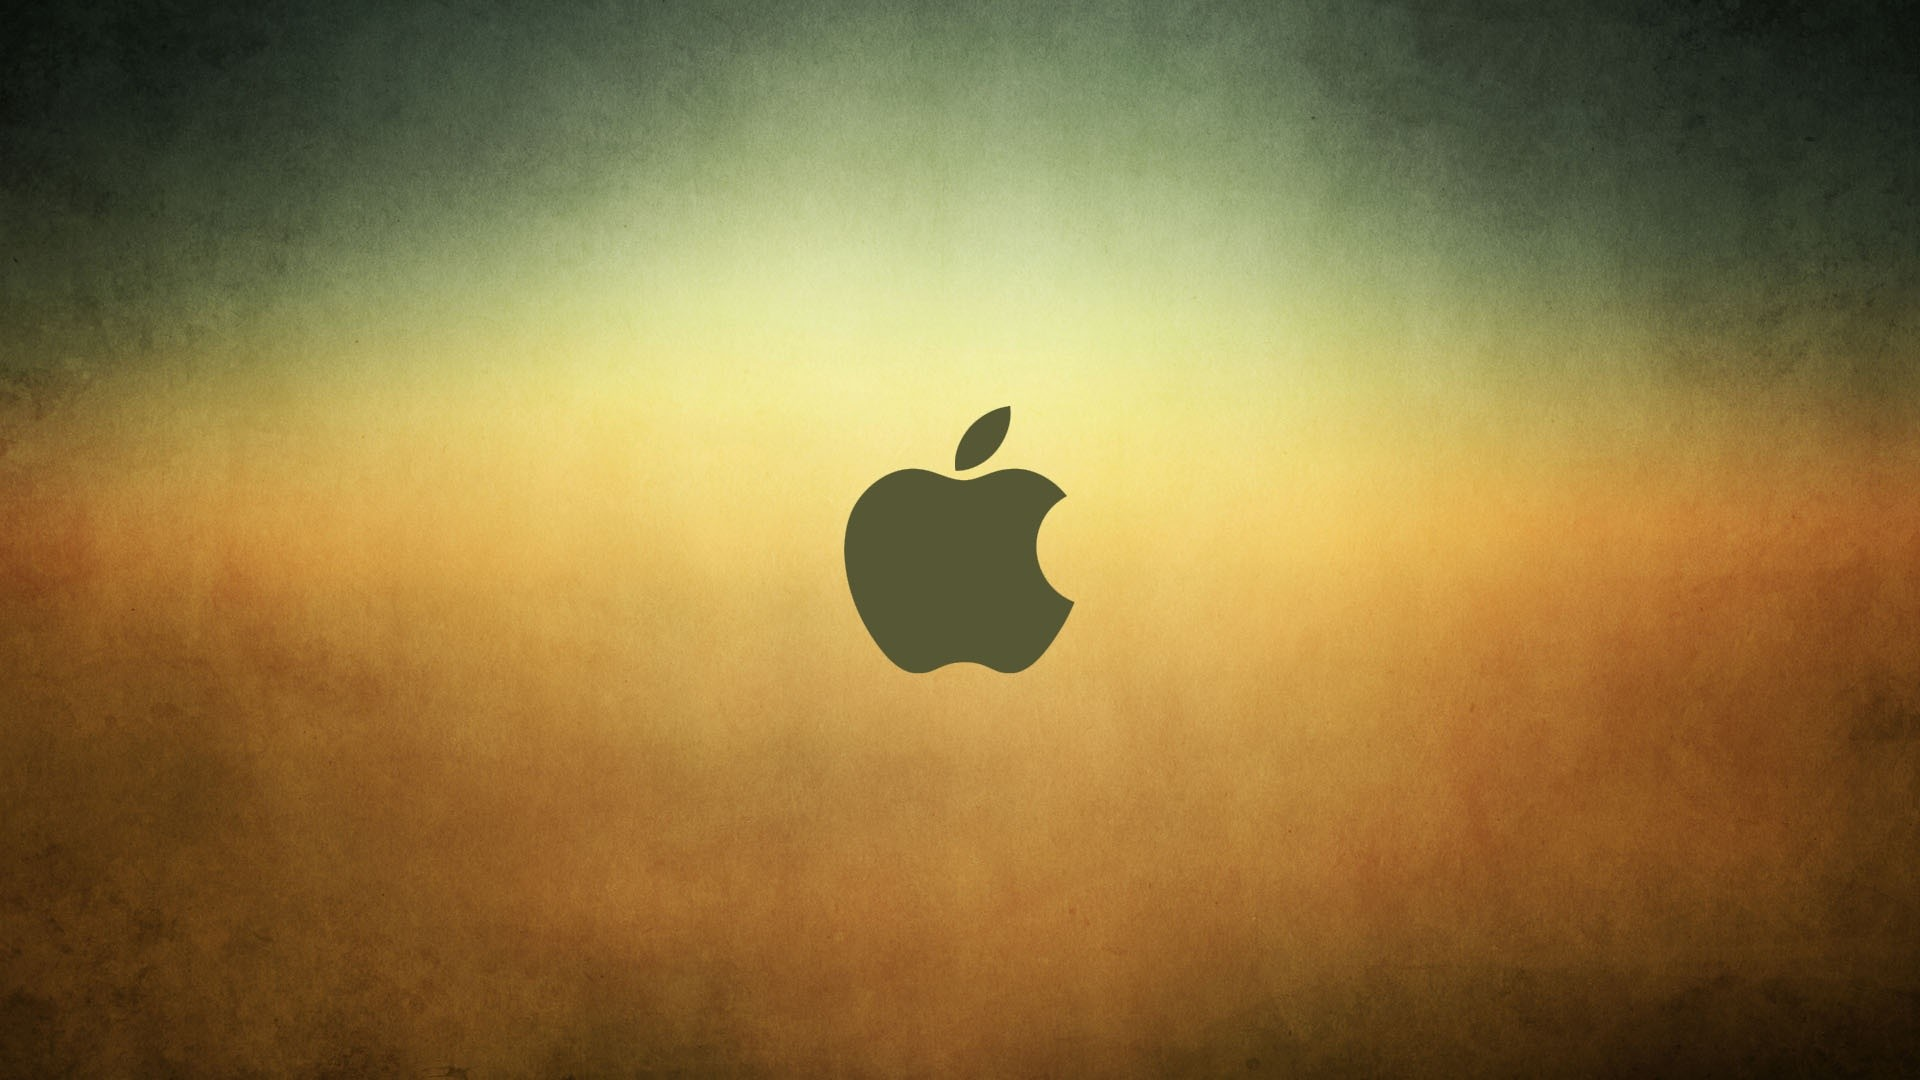 Hd Wallpapers Of Ipad A: HD Apple Wallpapers 1080p (70+ Images